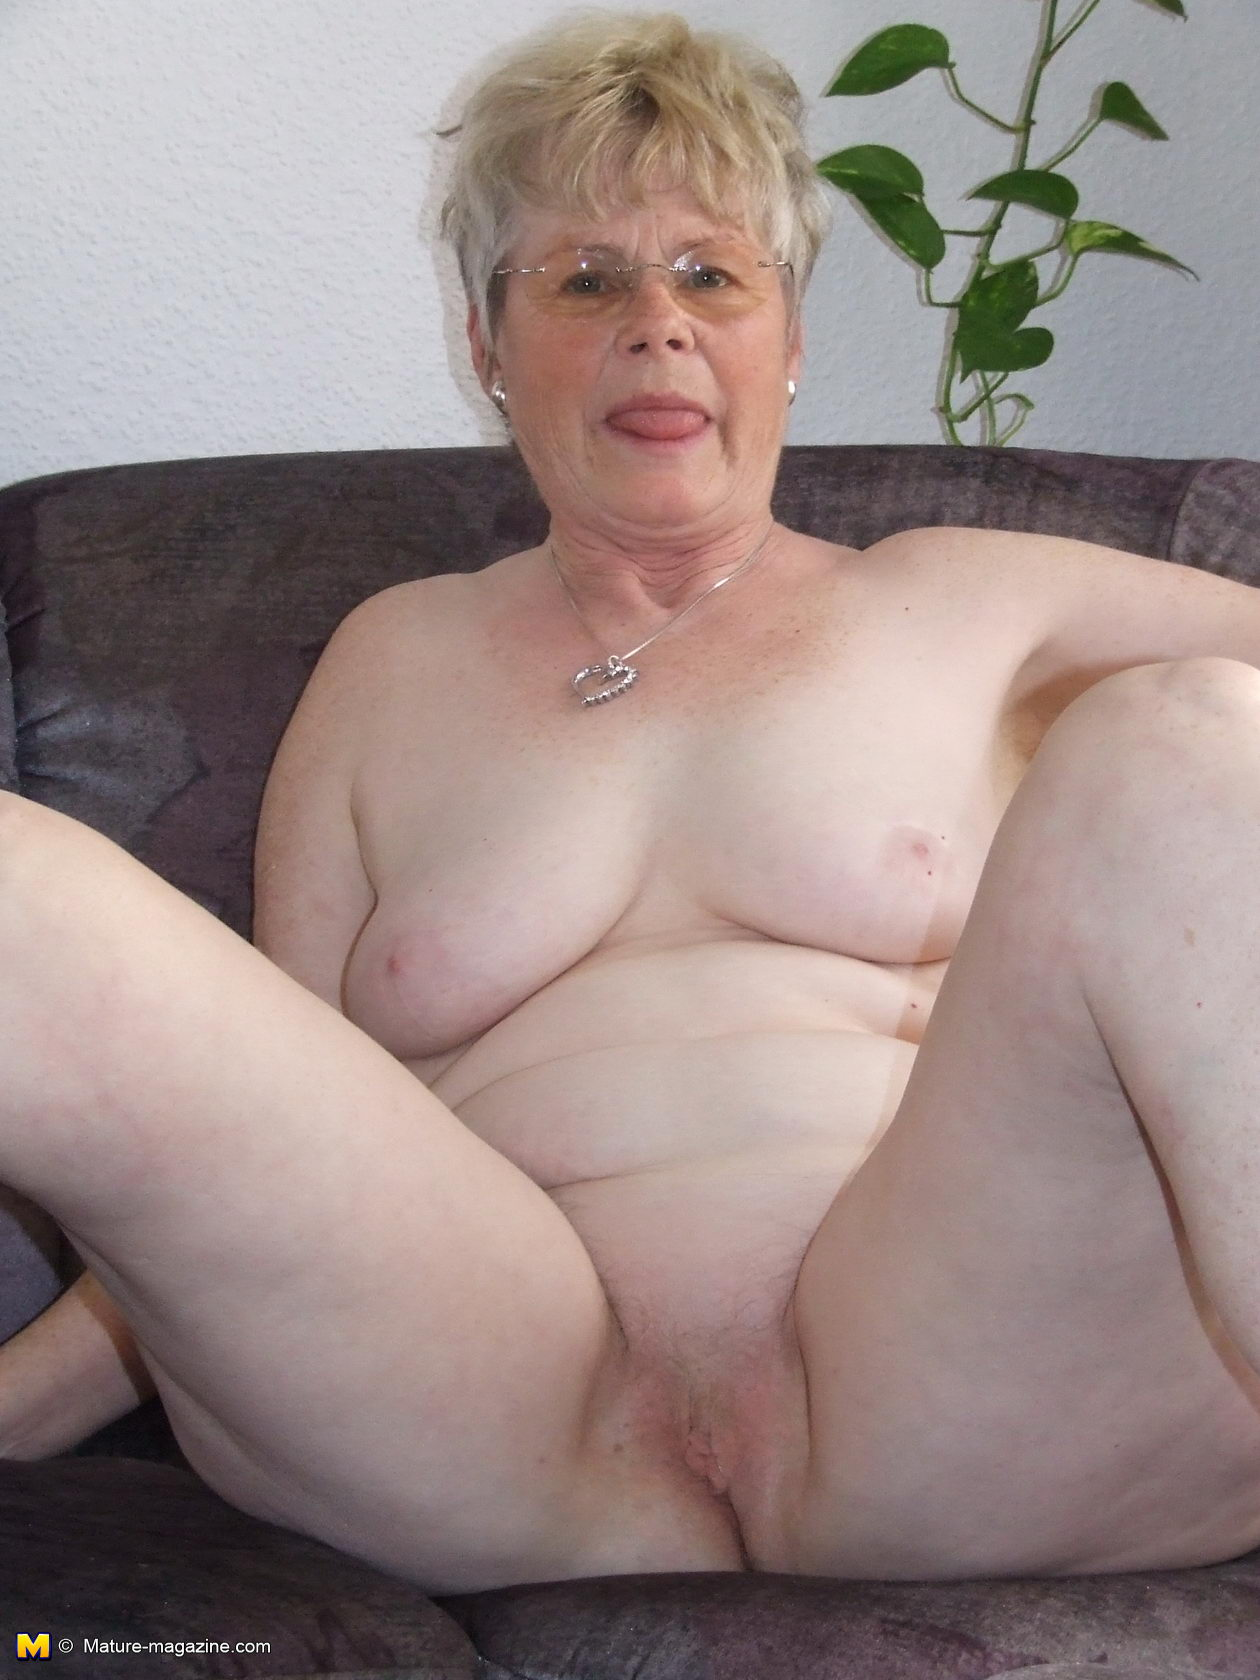 Nude Picture Of Old Women